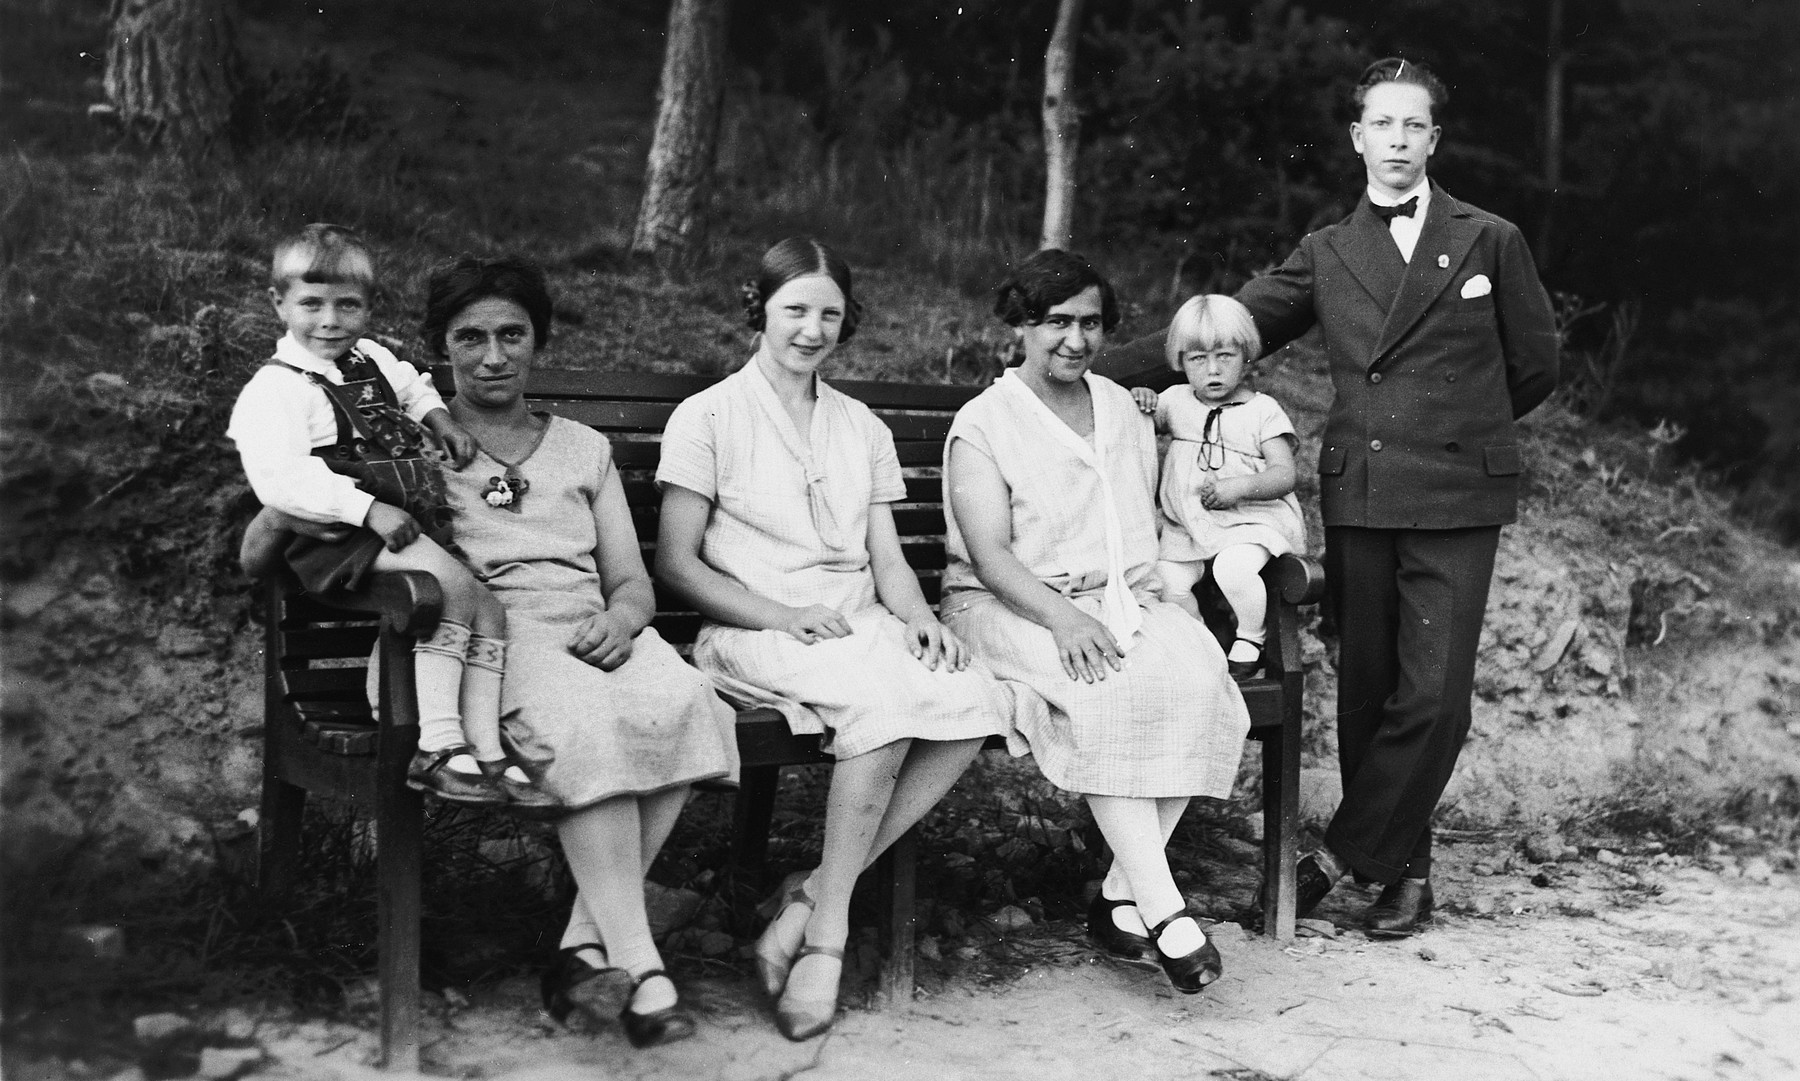 A German-Jewish family poses on a park bench.  Johanna Leopold Kuemmel is on the far left with her son Werner.  Her daughter Hilde is on the right next to her sister Berta.